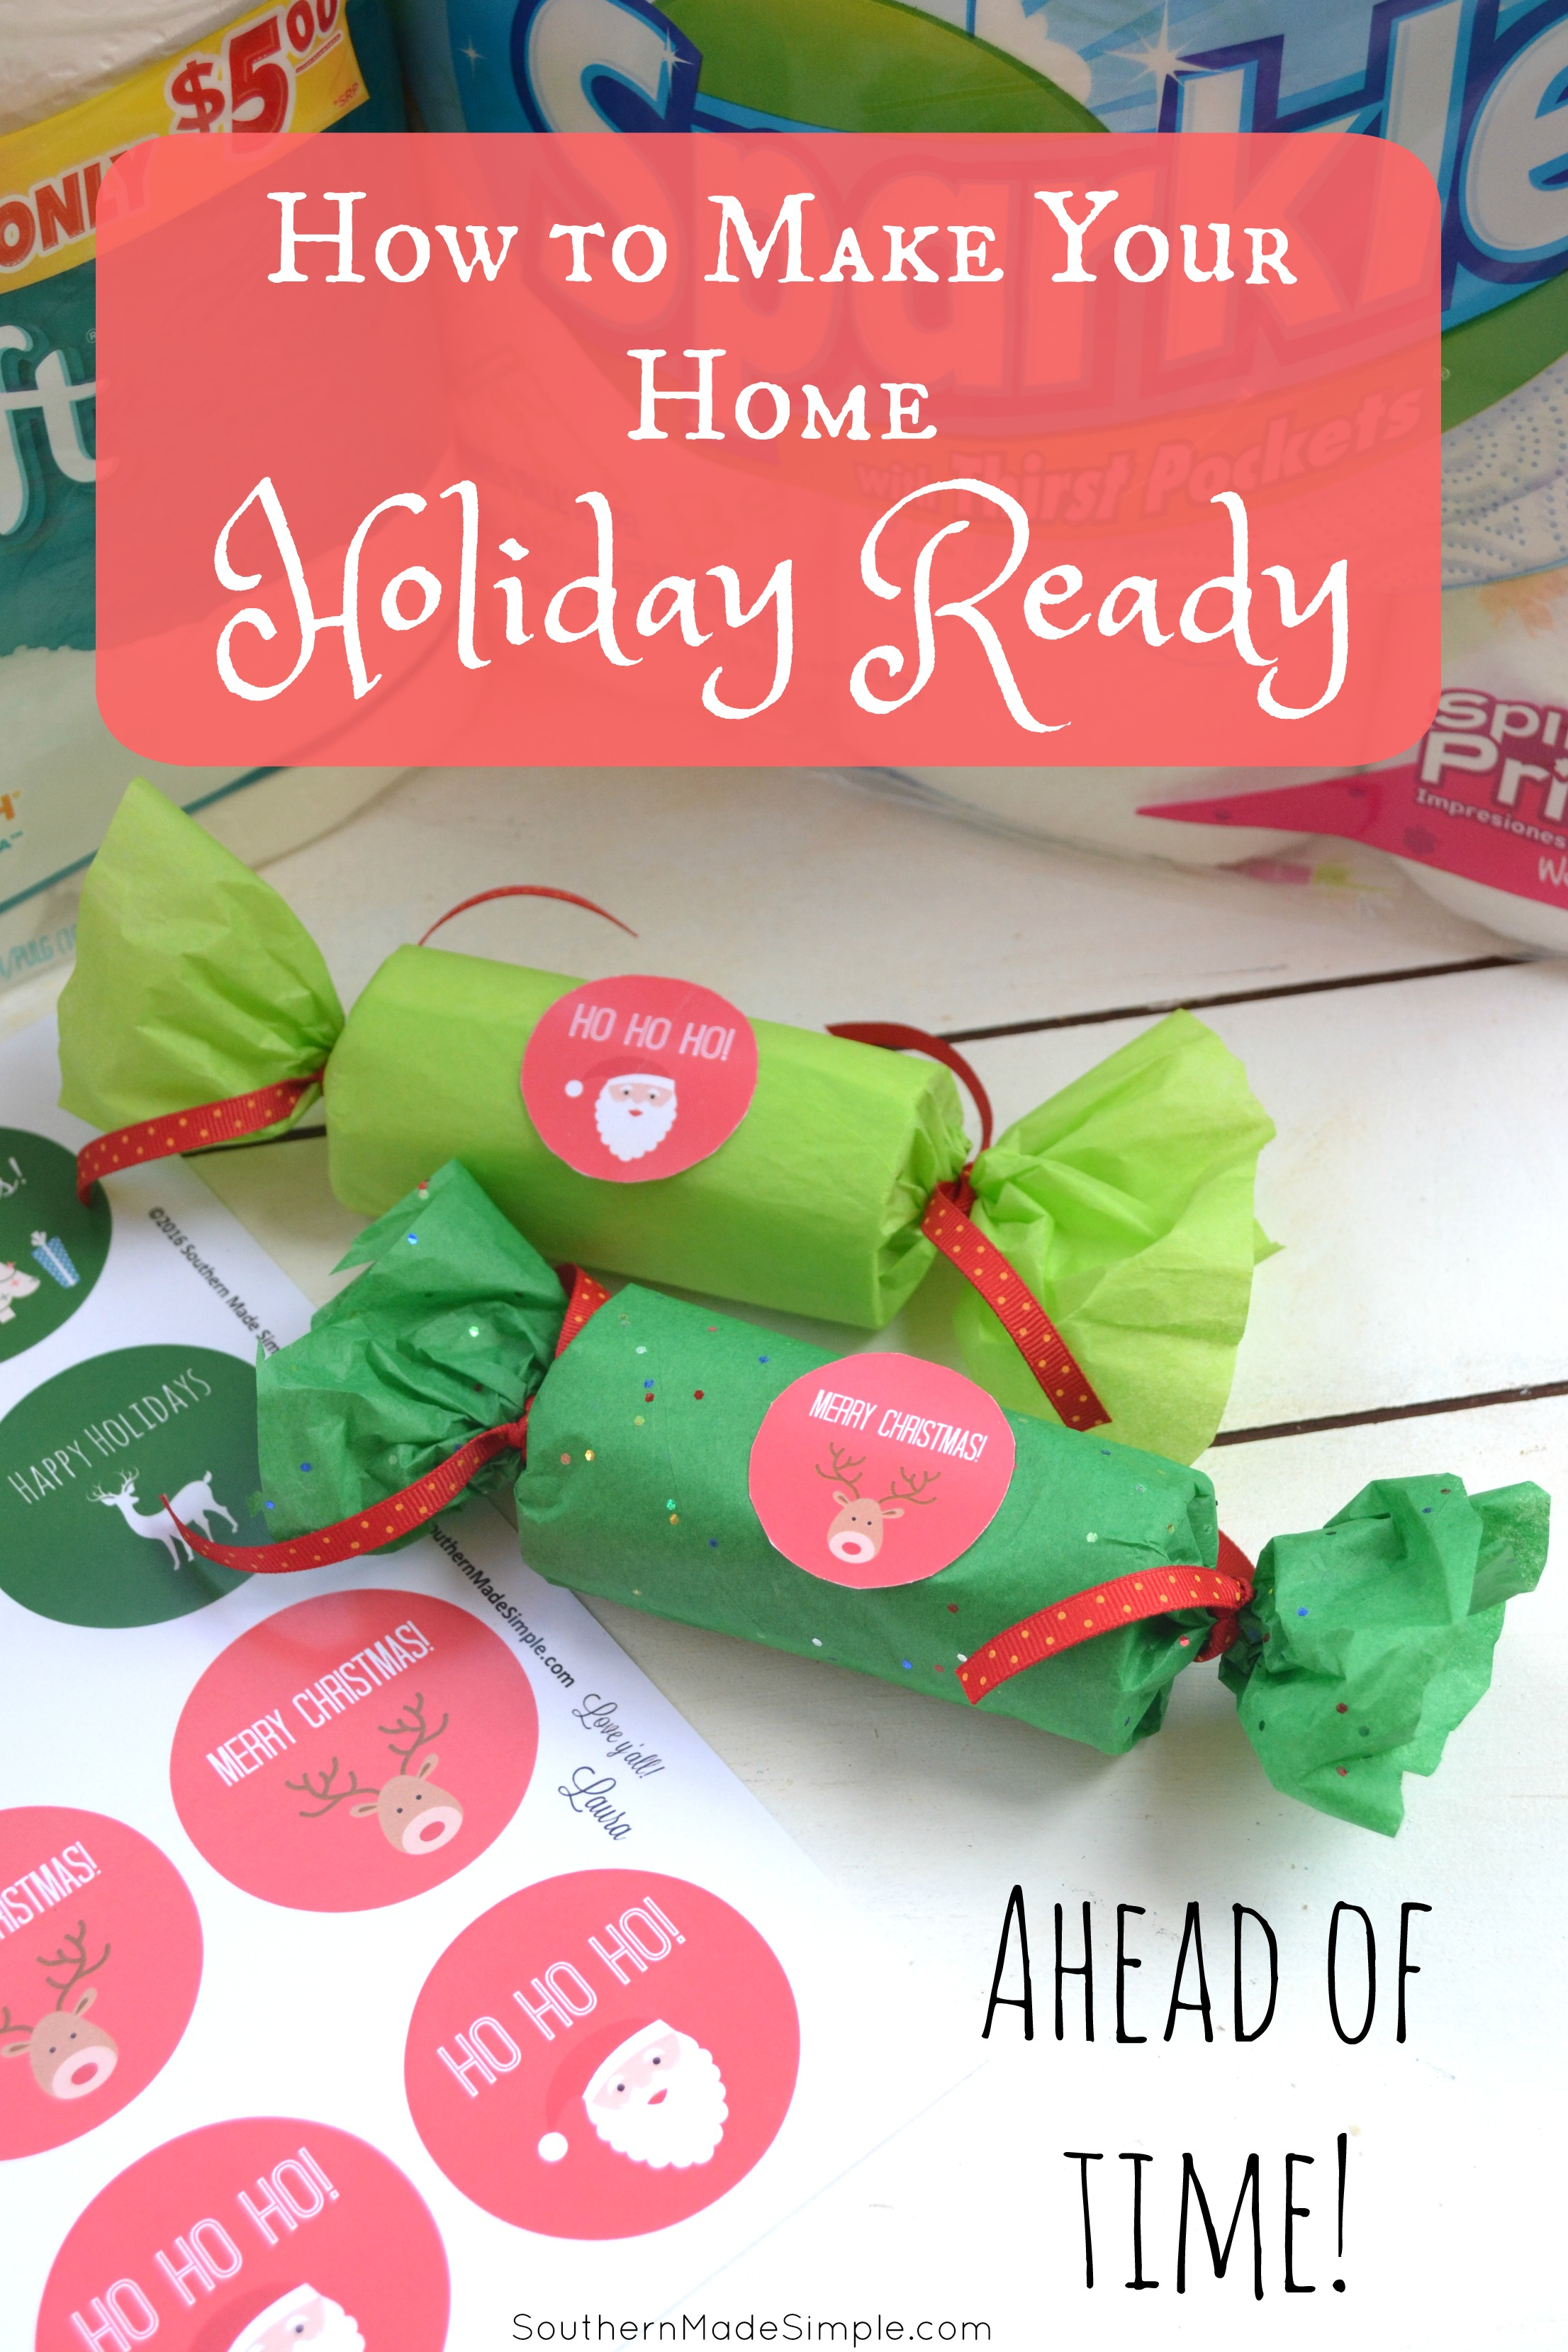 Are you expecting company over during this busy holiday season? I've got 3 tips to help you get your home holiday ready AHEAD of time so you're not left scrambling to get it all done before guests show up at your door! Plus, I've got a quick and easy little tutorial on how to turn an unexpected item into an adorable little gift holder! #CelebrateClean AD